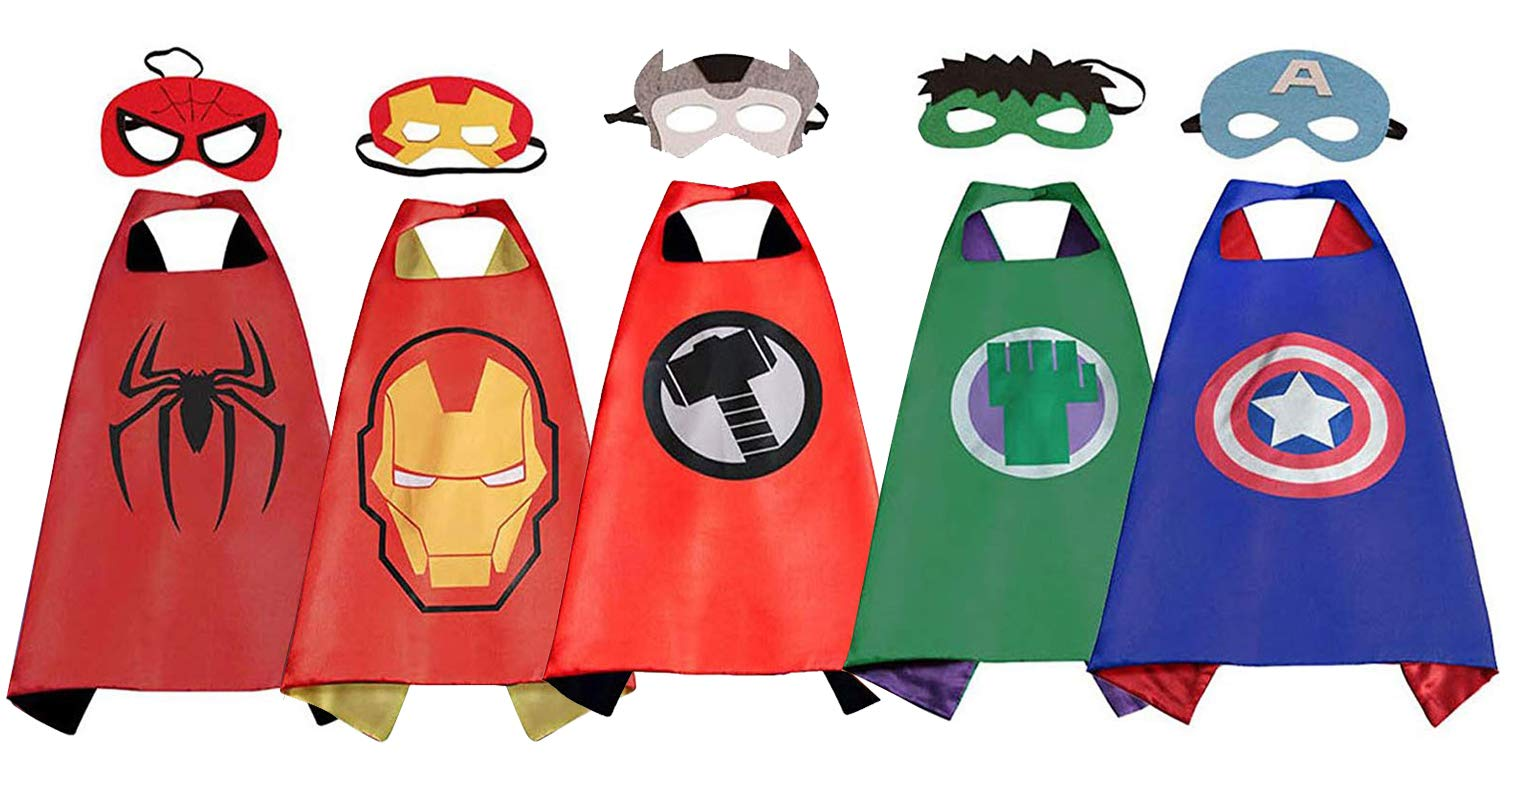 Superhero Costumes and Dress up for Kids - Perfect Party Costumes for Capes and Masks